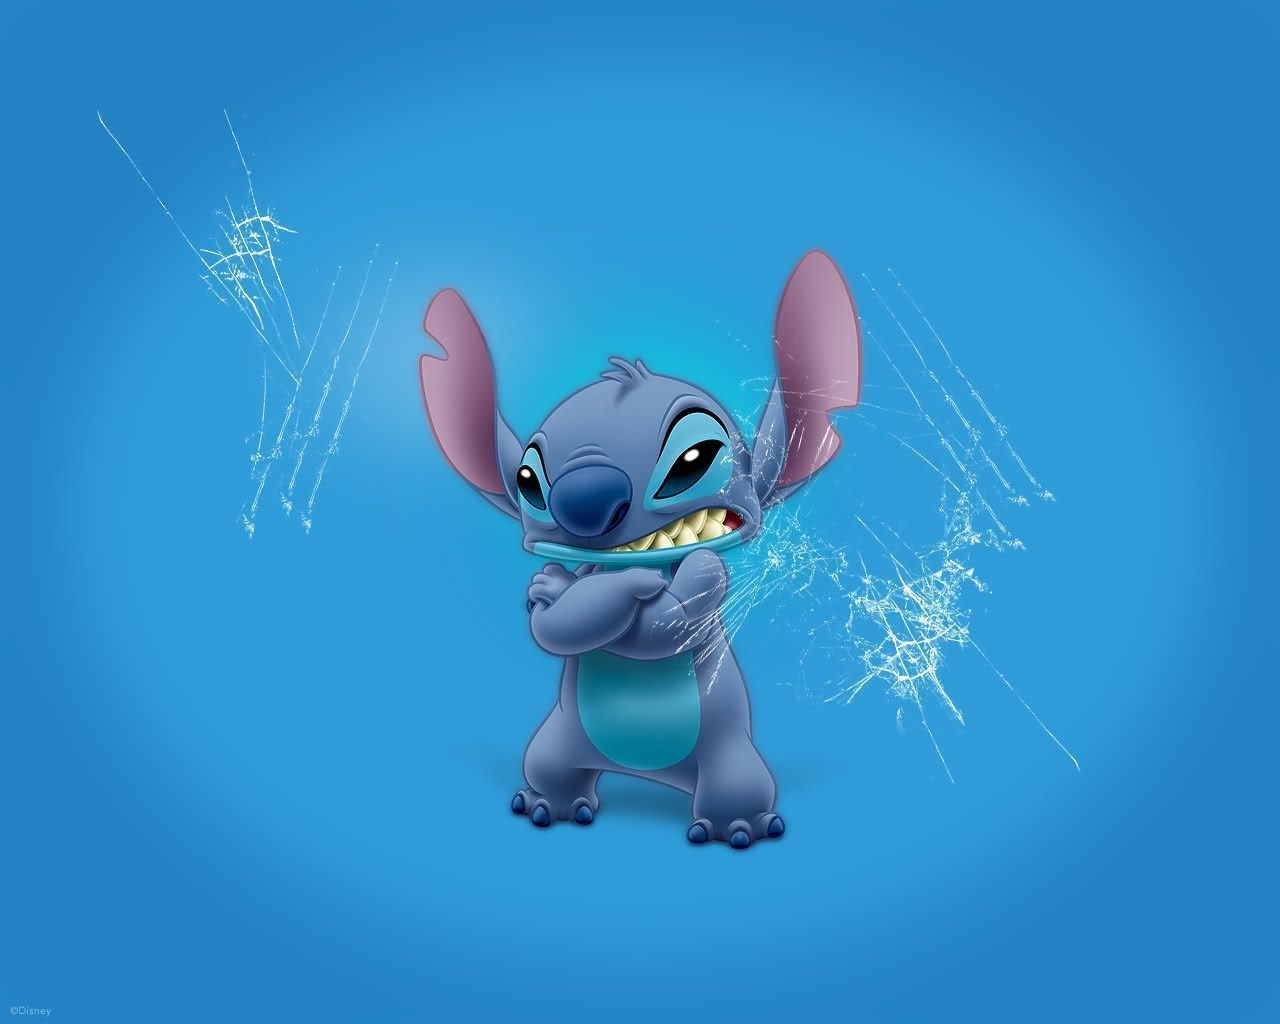 Cute Lilo And Stitch Computer Wallpapers Top Free Cute Lilo And Stitch Computer Backgrounds Wallpaperaccess